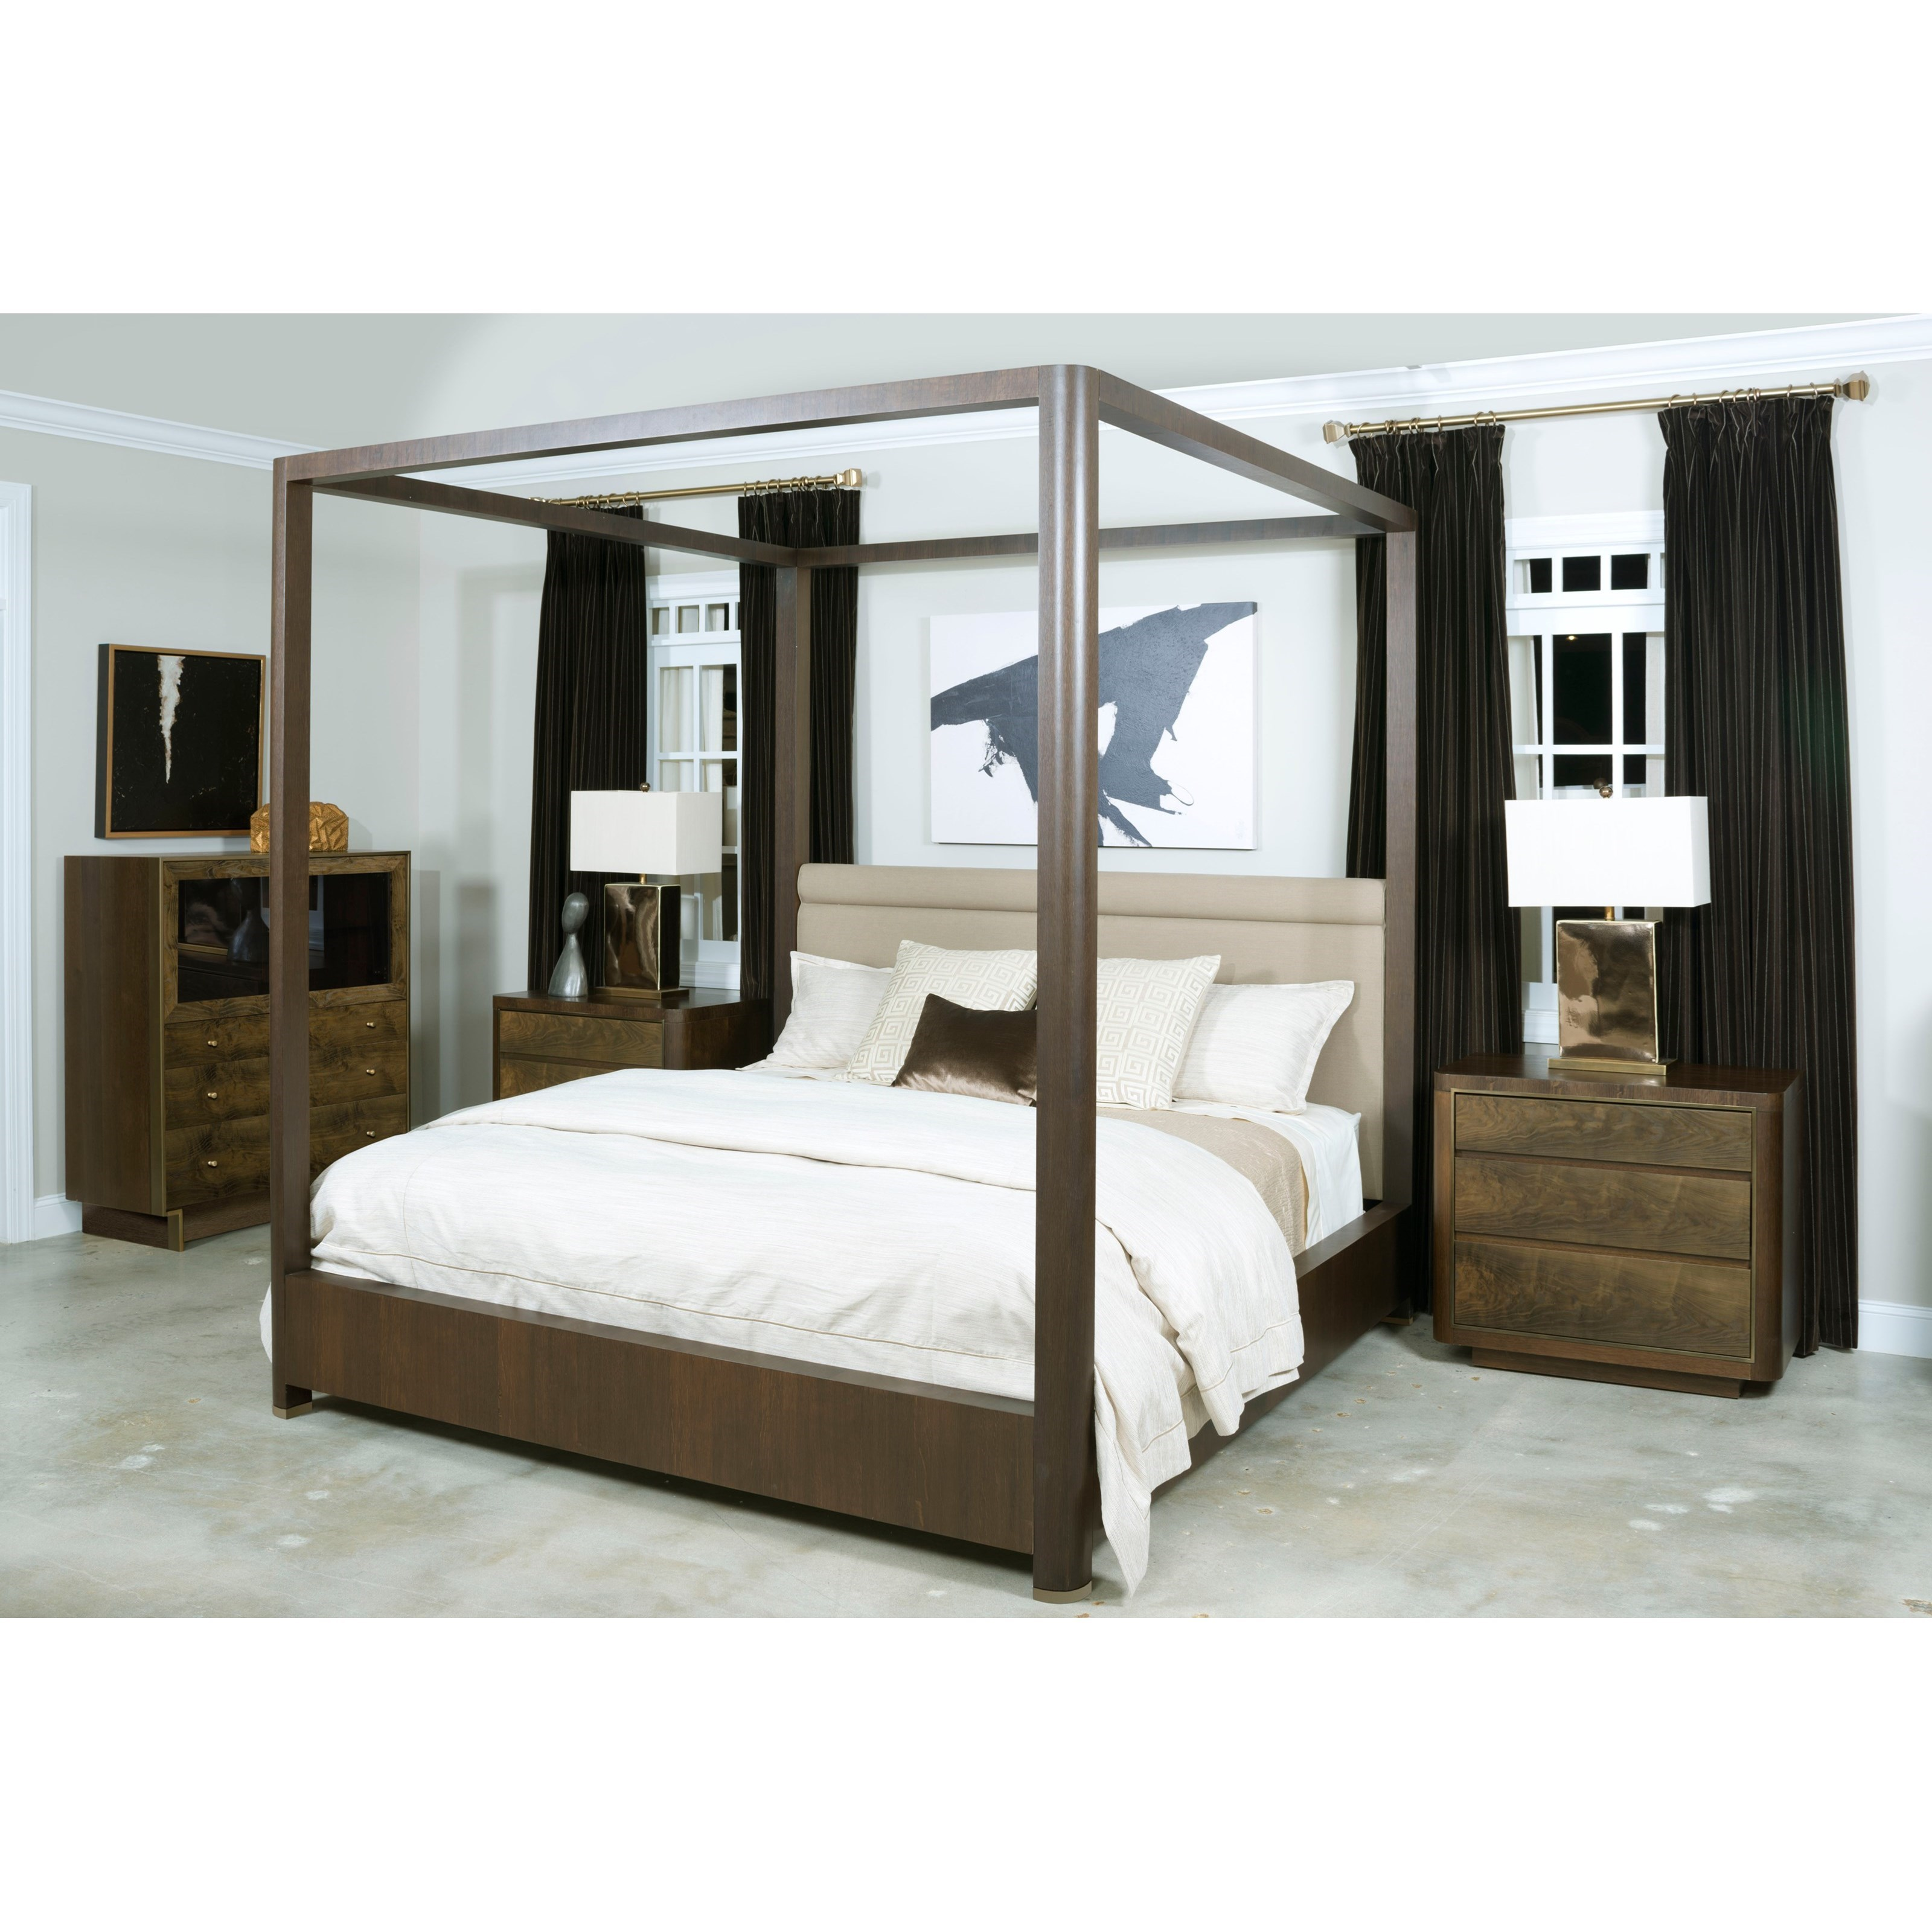 King Fremont Canopy Bed By American Drew Wolf And Gardiner Wolf Furniture